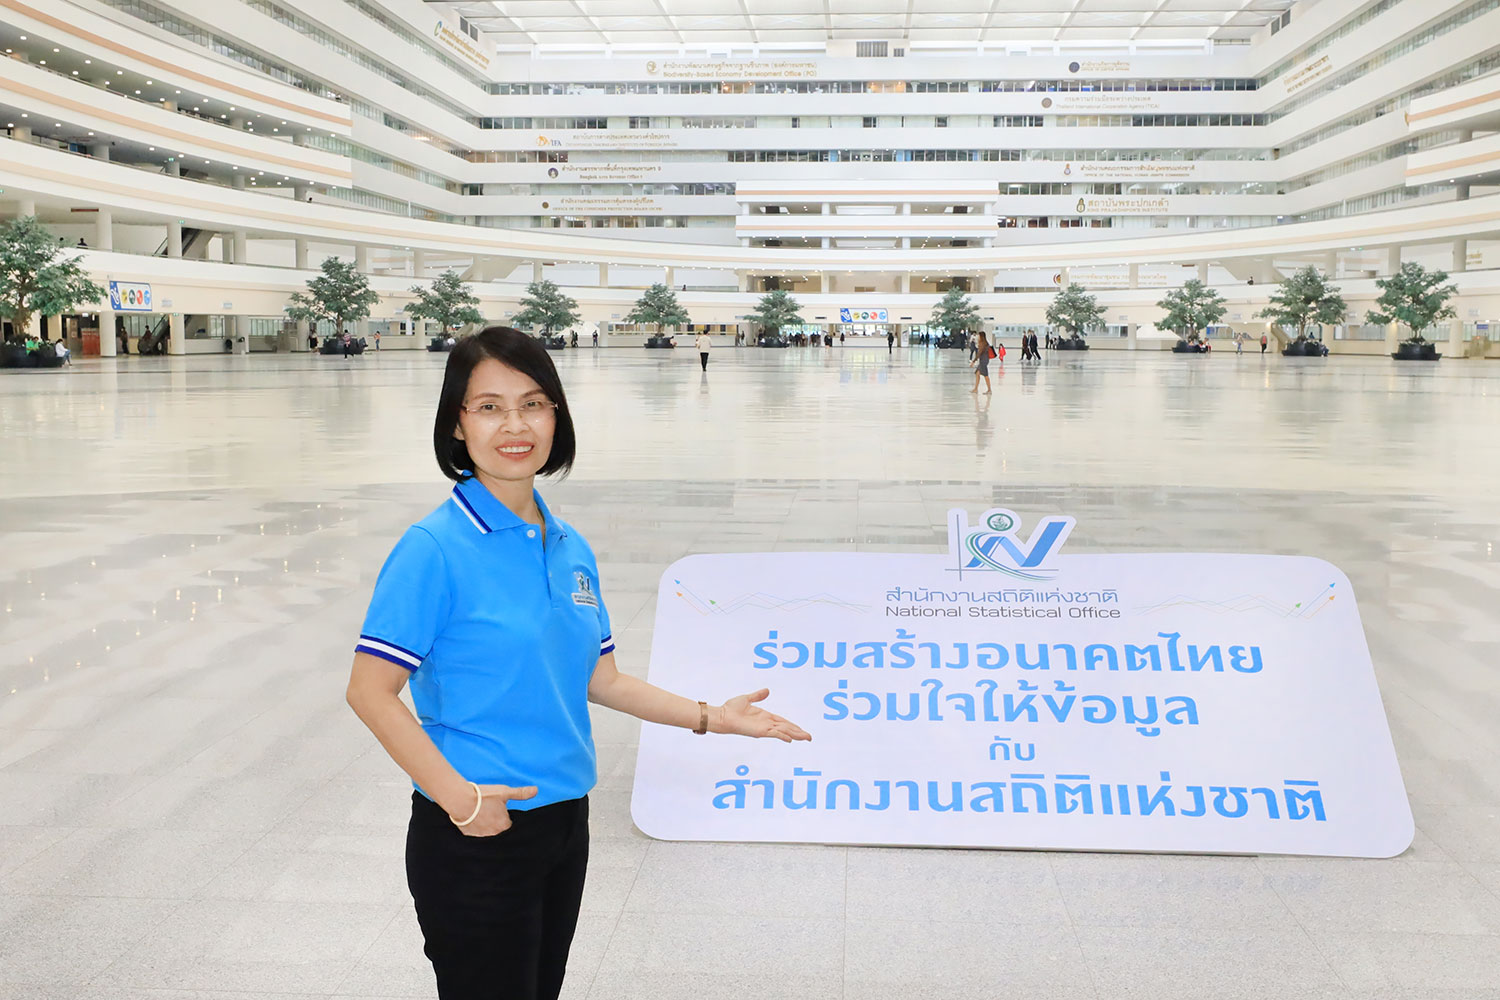 National Statistical Office of Thailand is maKing progress in collecting the 2022